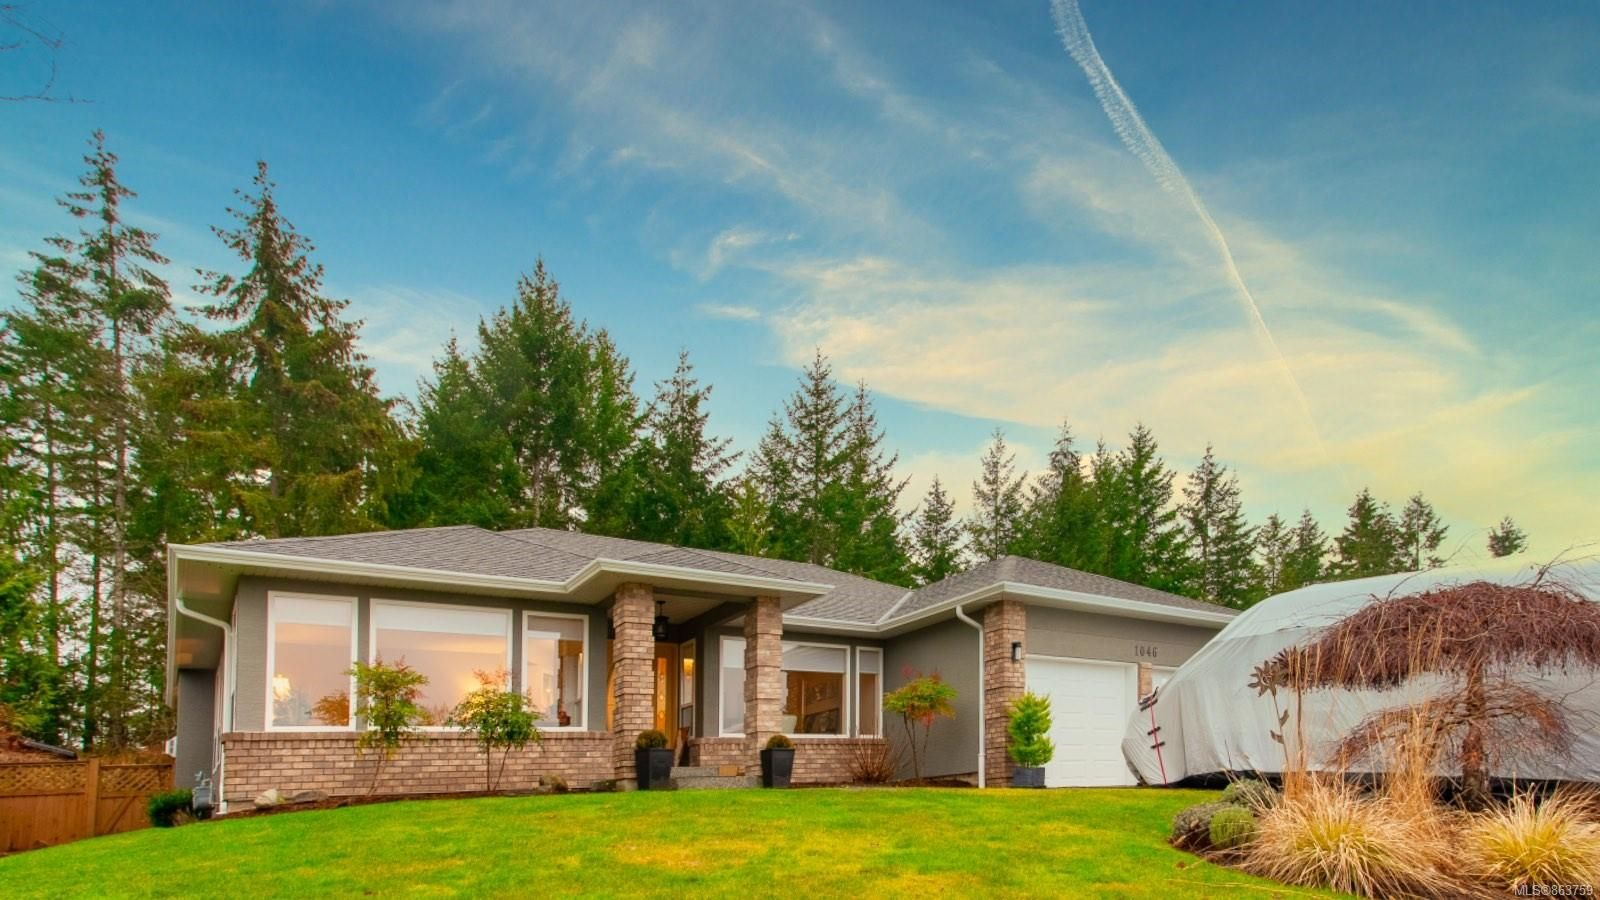 Main Photo: 1046 Miraloma Dr in : PQ Qualicum Beach House for sale (Parksville/Qualicum)  : MLS®# 863759